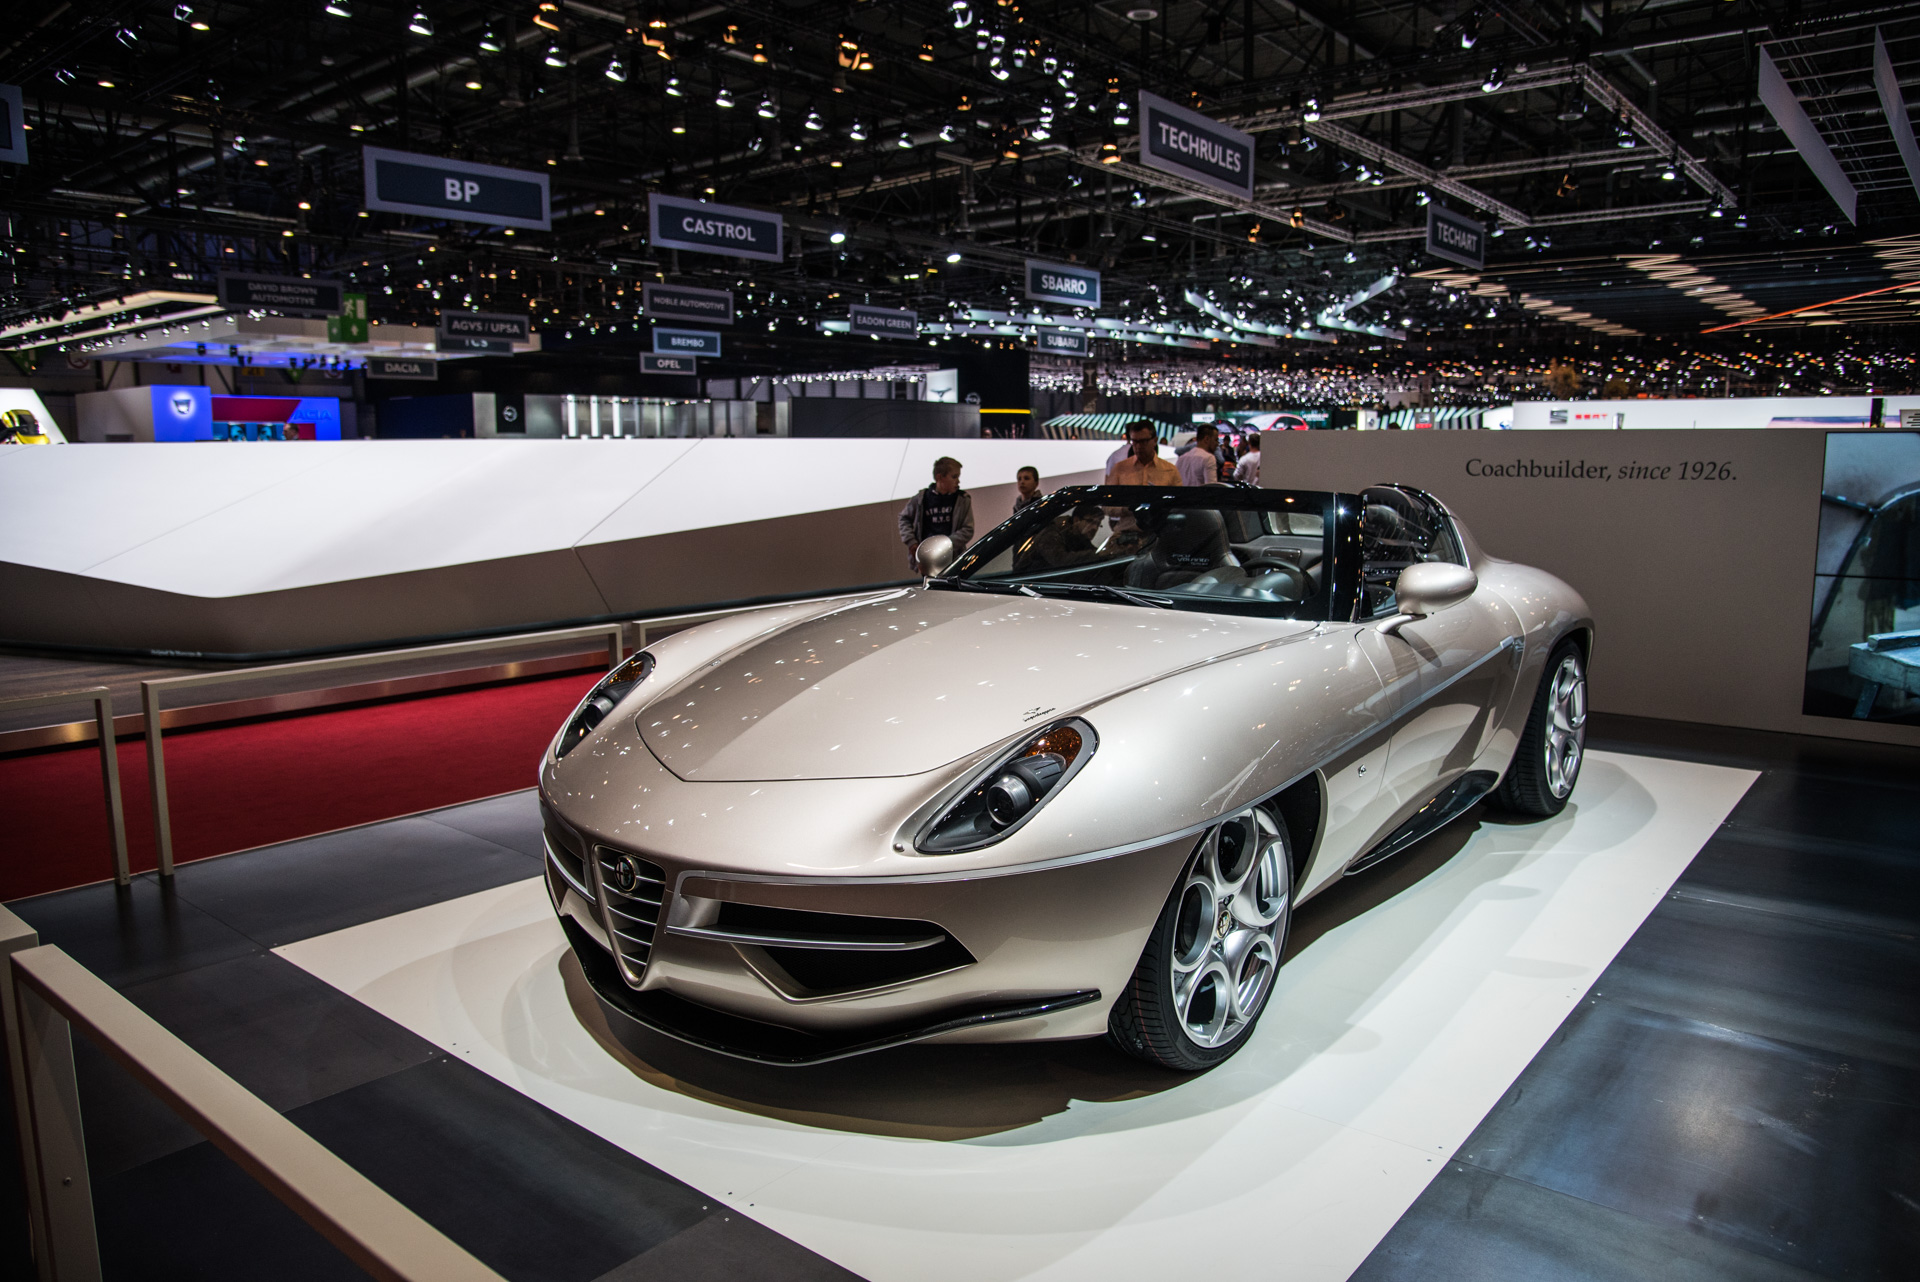 geneva-international-motor-show-igor-sinitsin-111